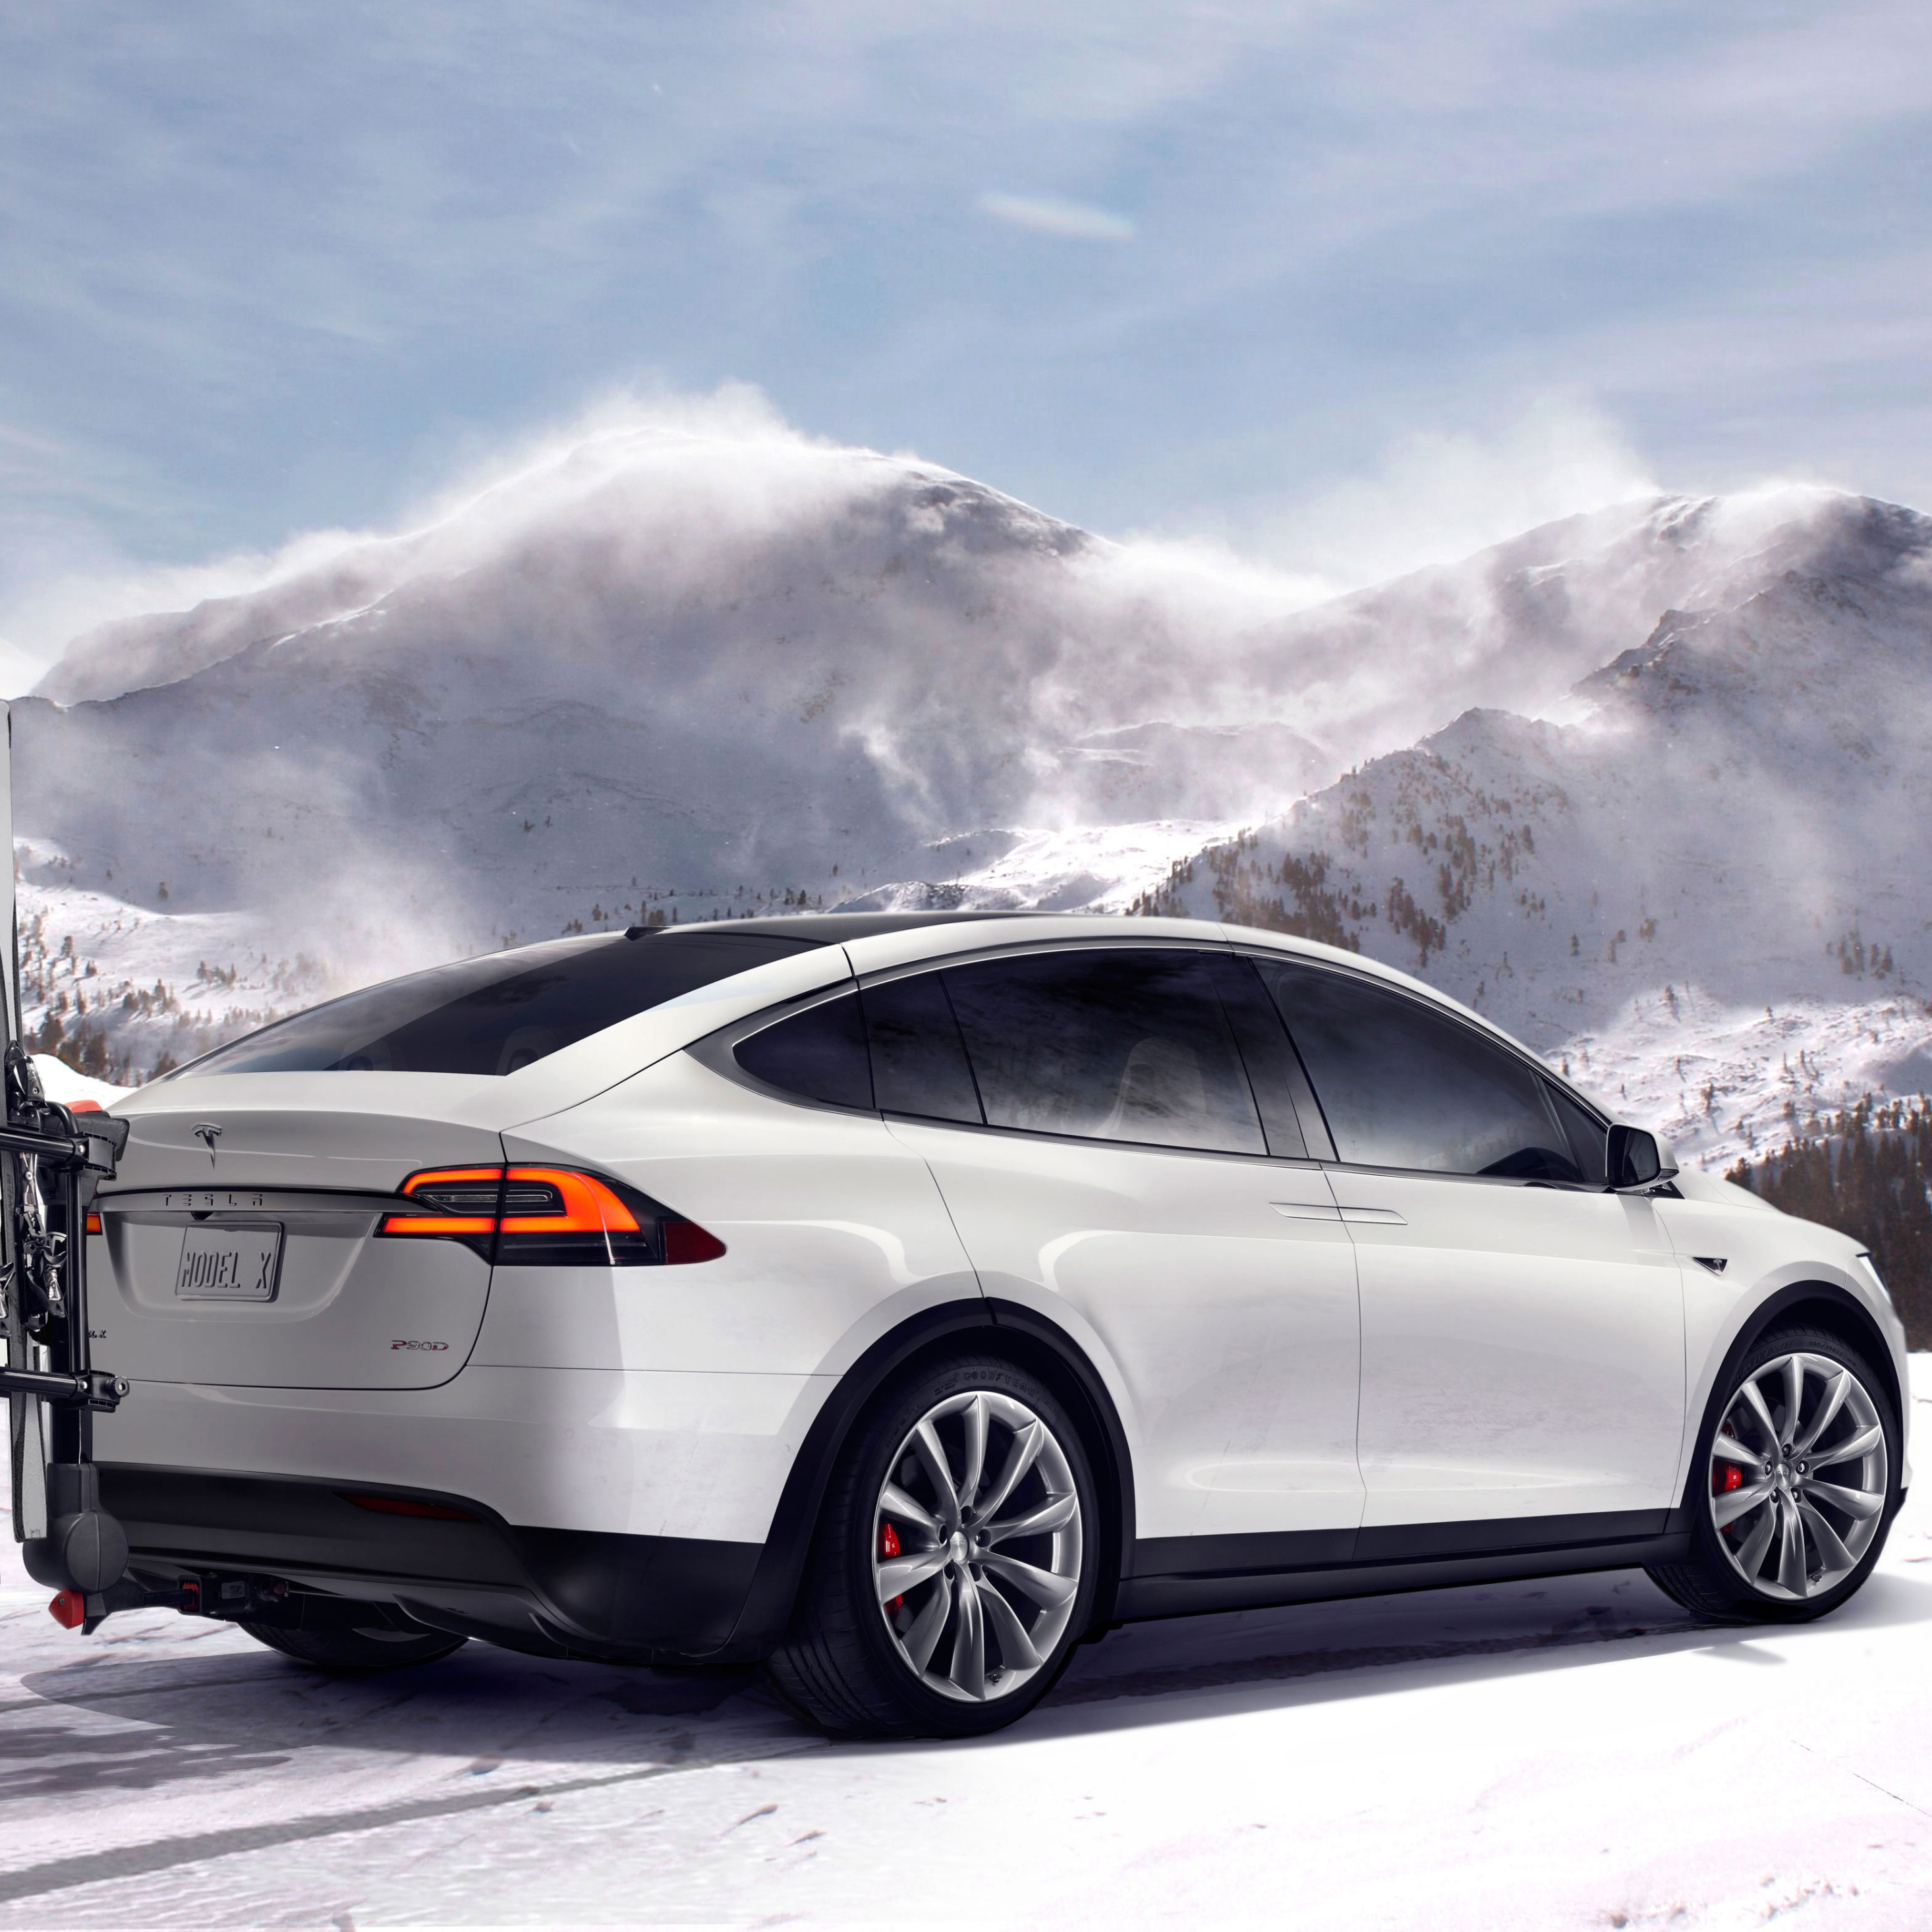 Tesla Model 3 Wallpaper Iphone: Tesla Model X In Mountains, HD 4K Wallpaper